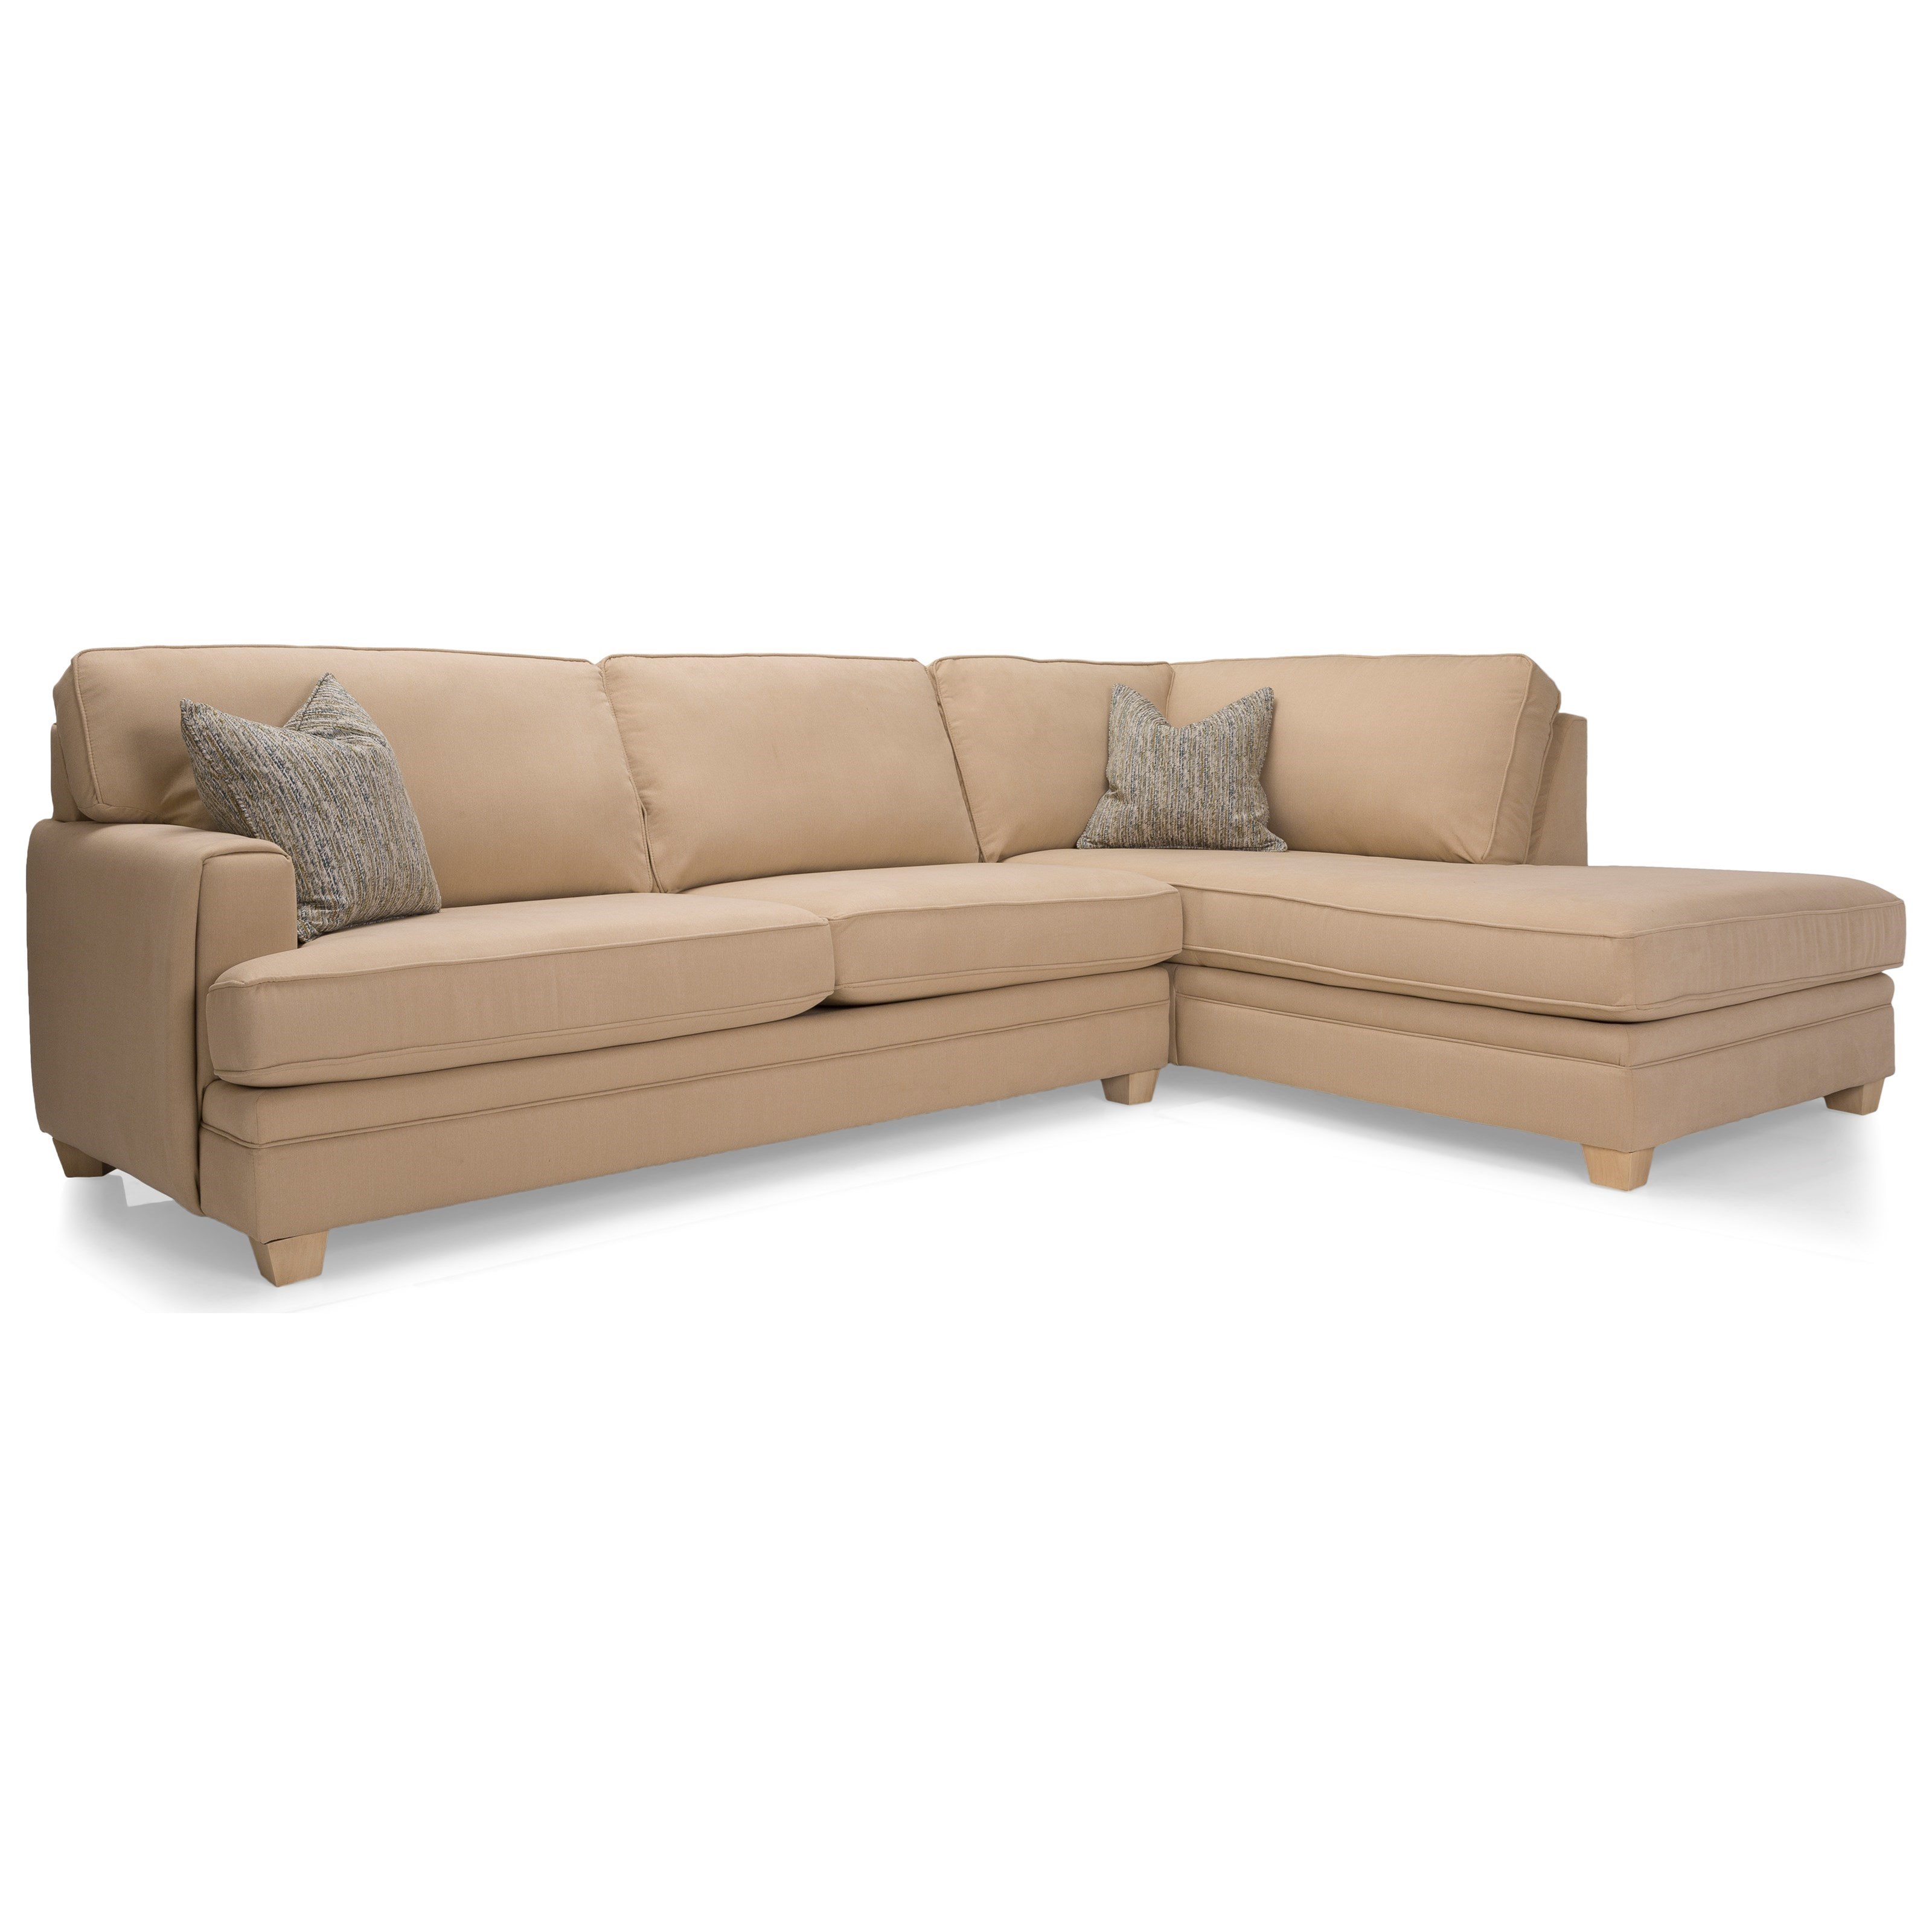 2697 Sectional Sofa by Decor-Rest at Johnny Janosik